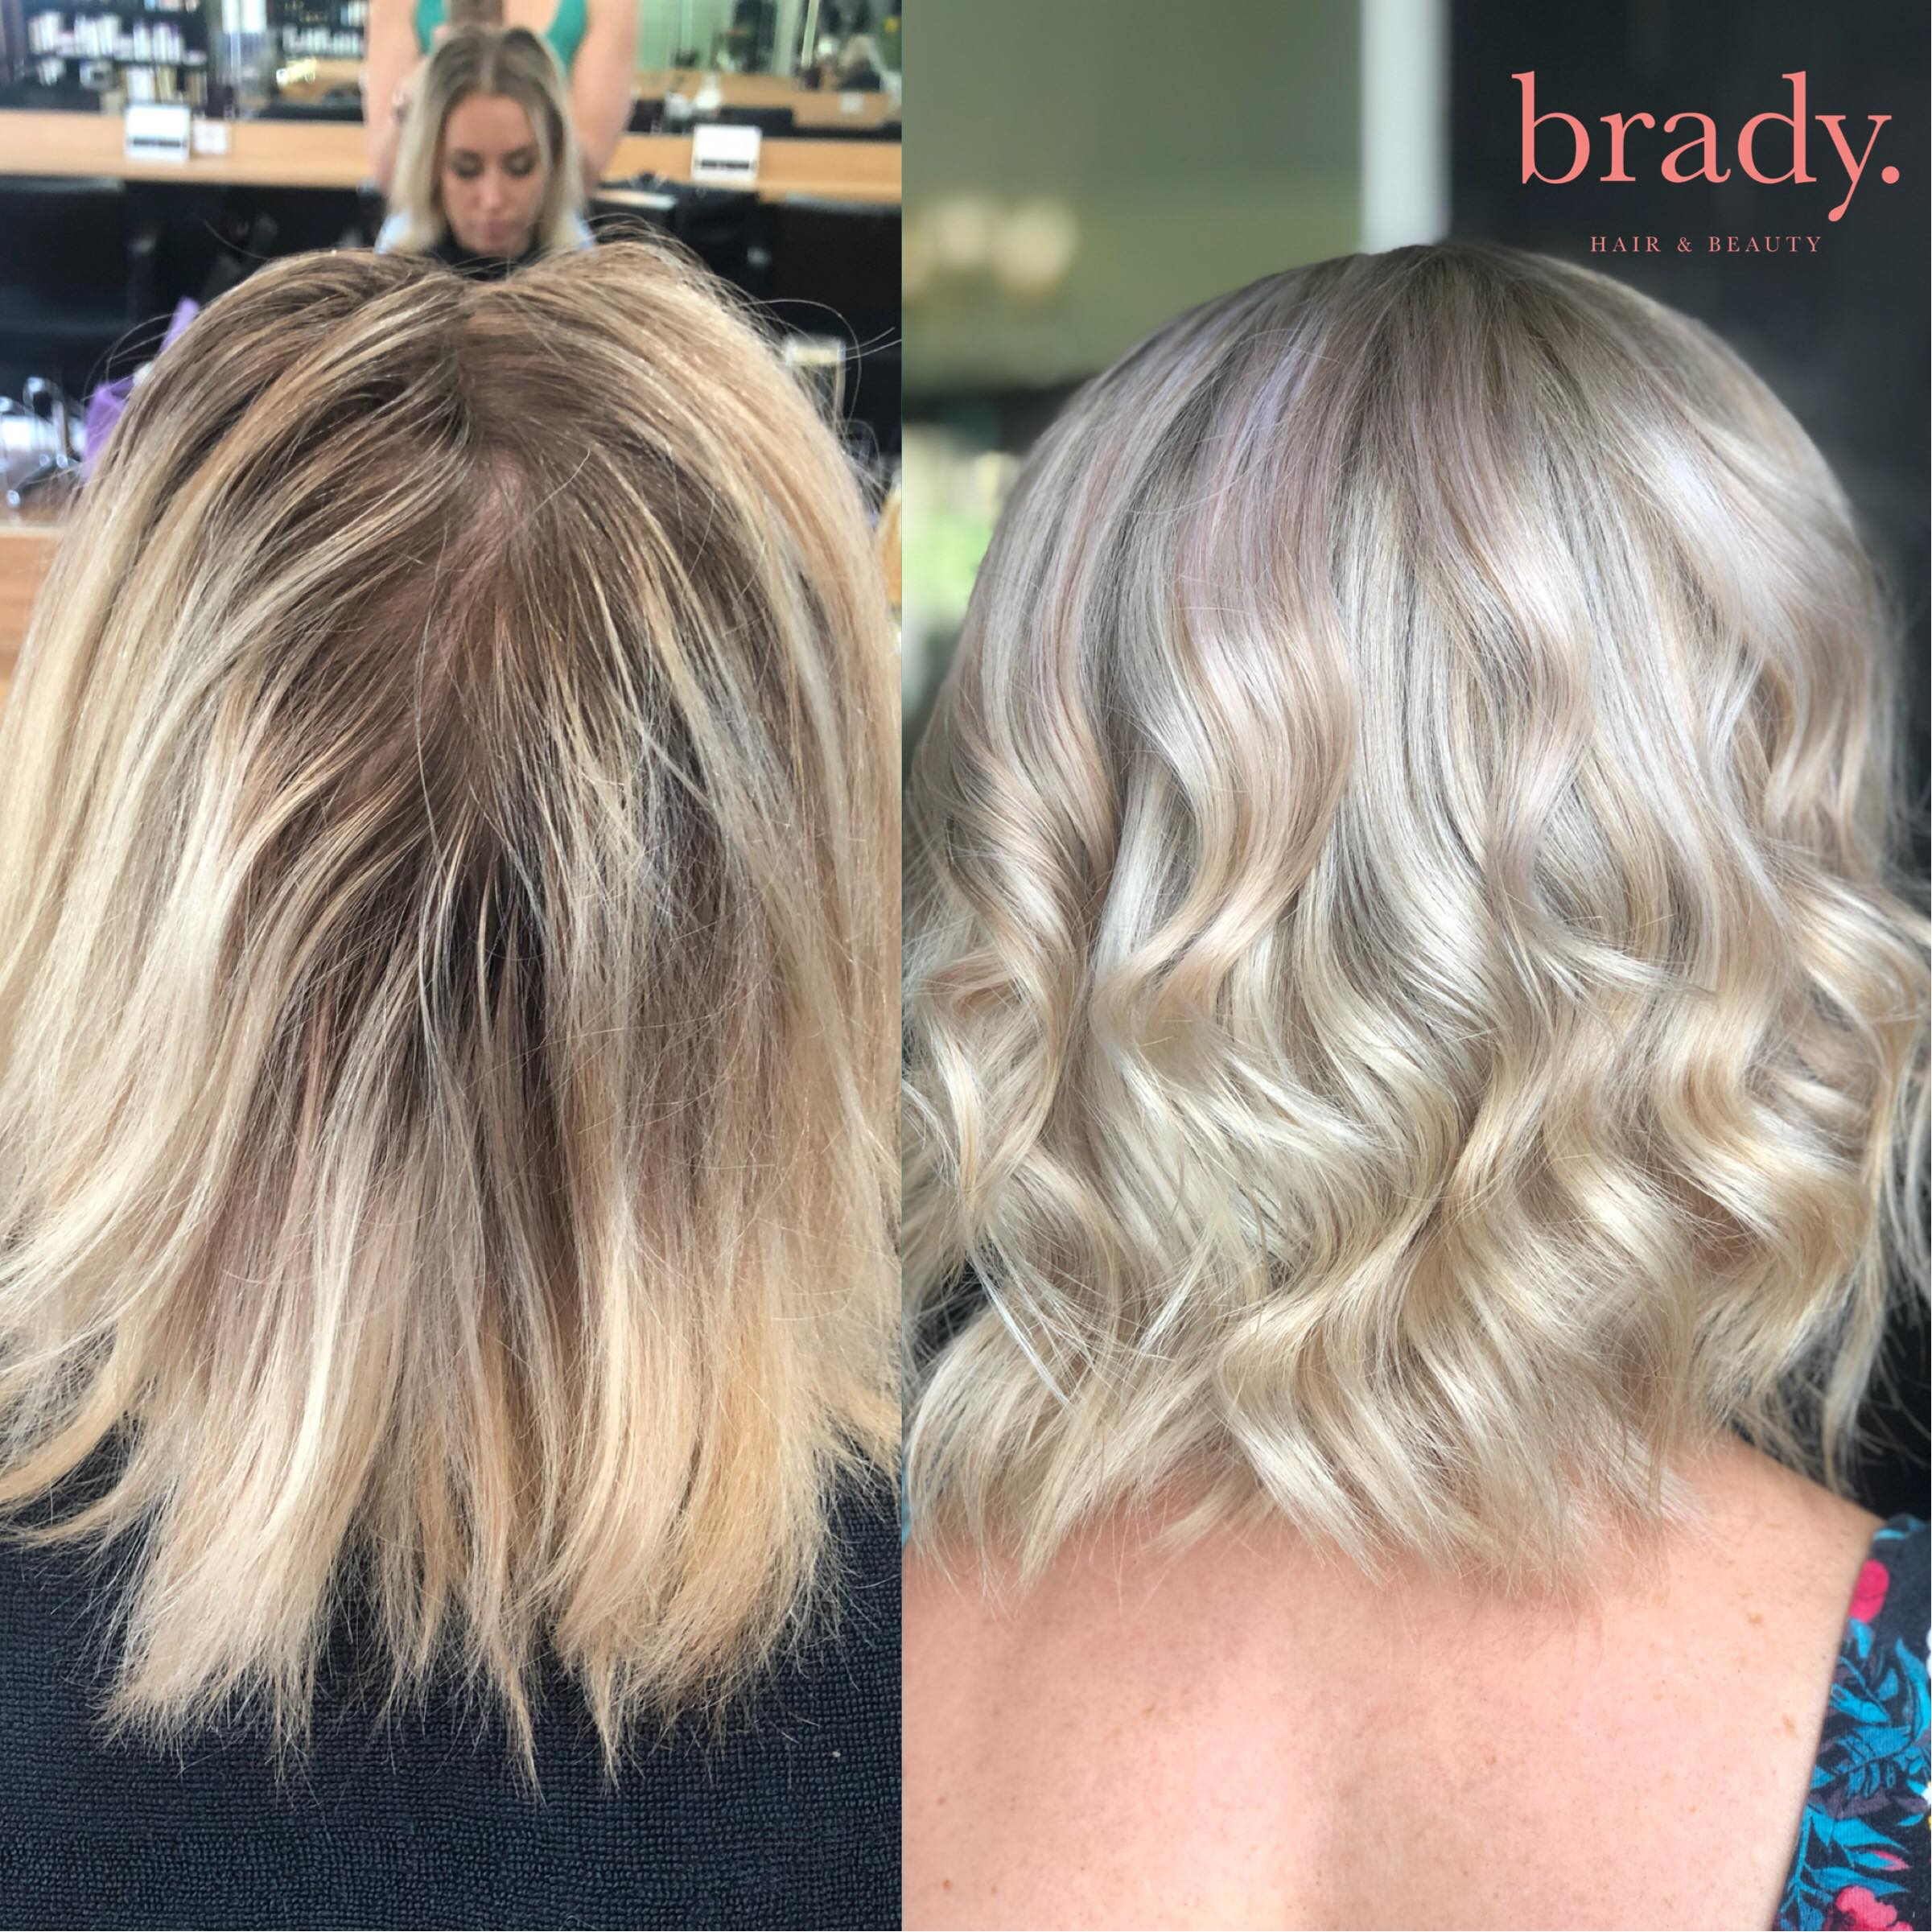 Before and after photo - medium wavy blonde hair styled by Brady. Hair & Beauty, Toowong, Brisbane.